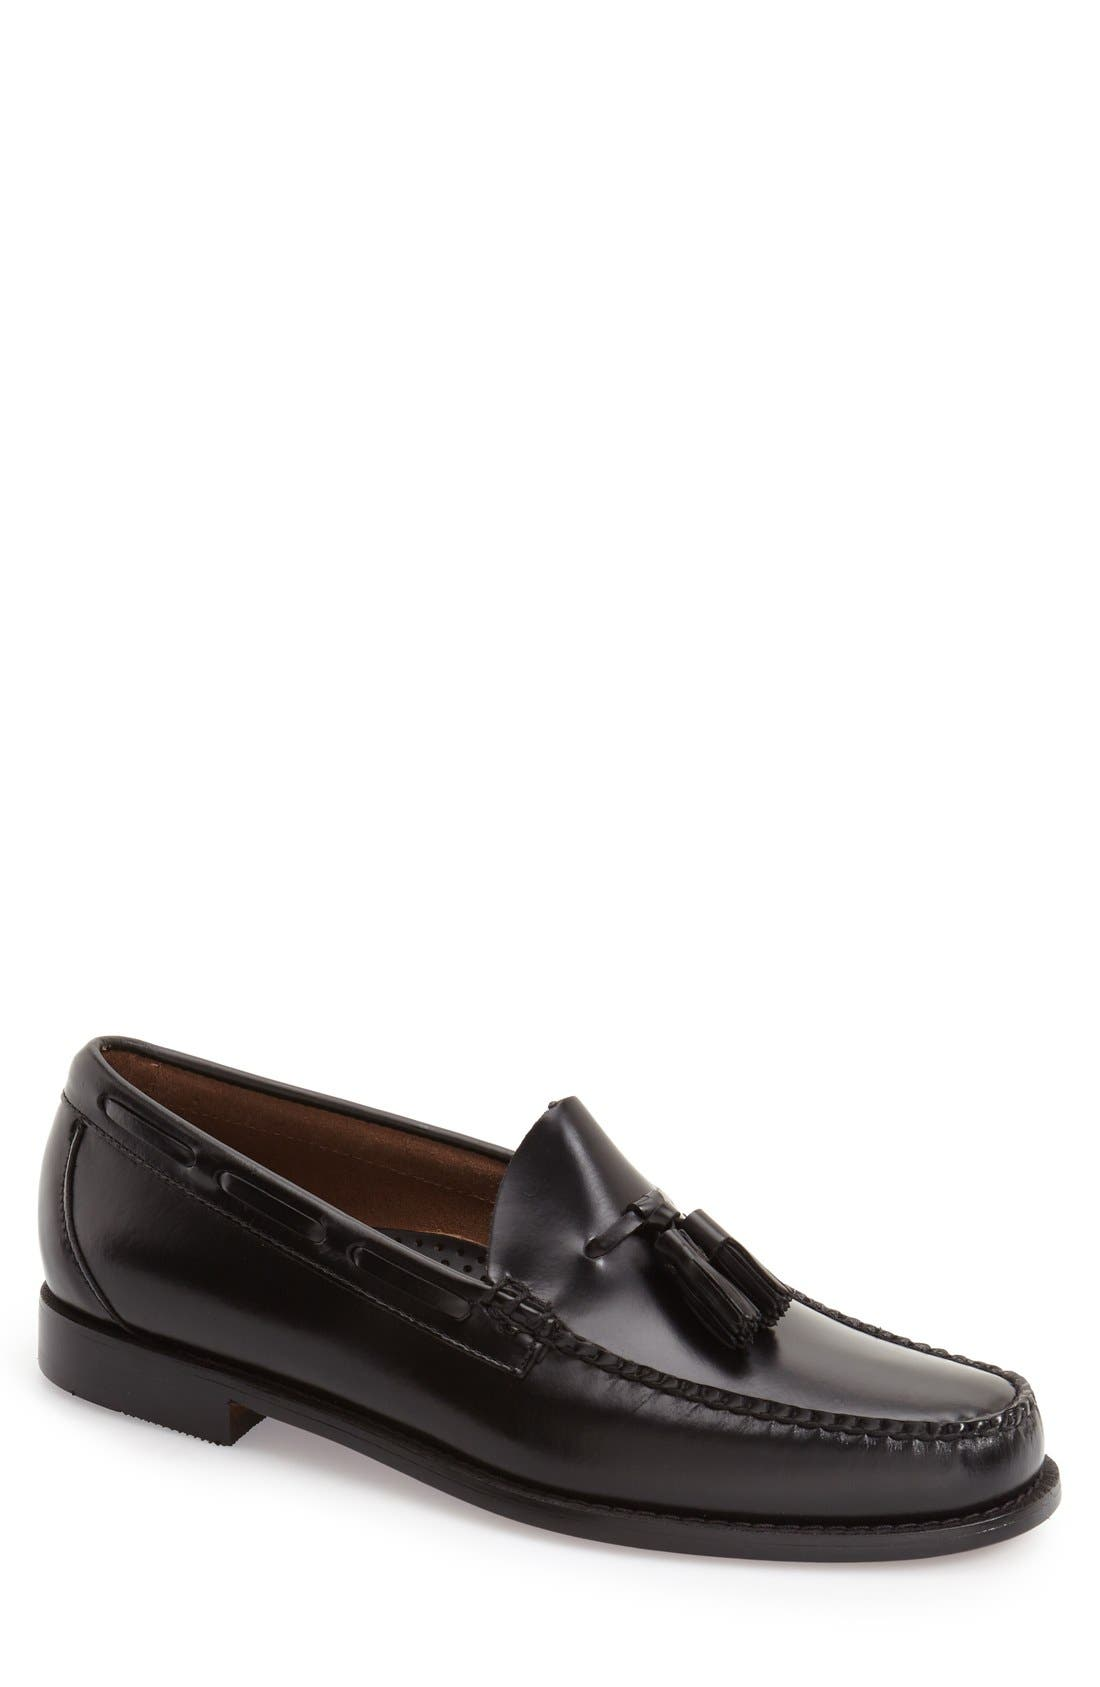 G.H. BASS & CO. 'Lexington - Weejuns' Tassel Loafer, Main, color, 001